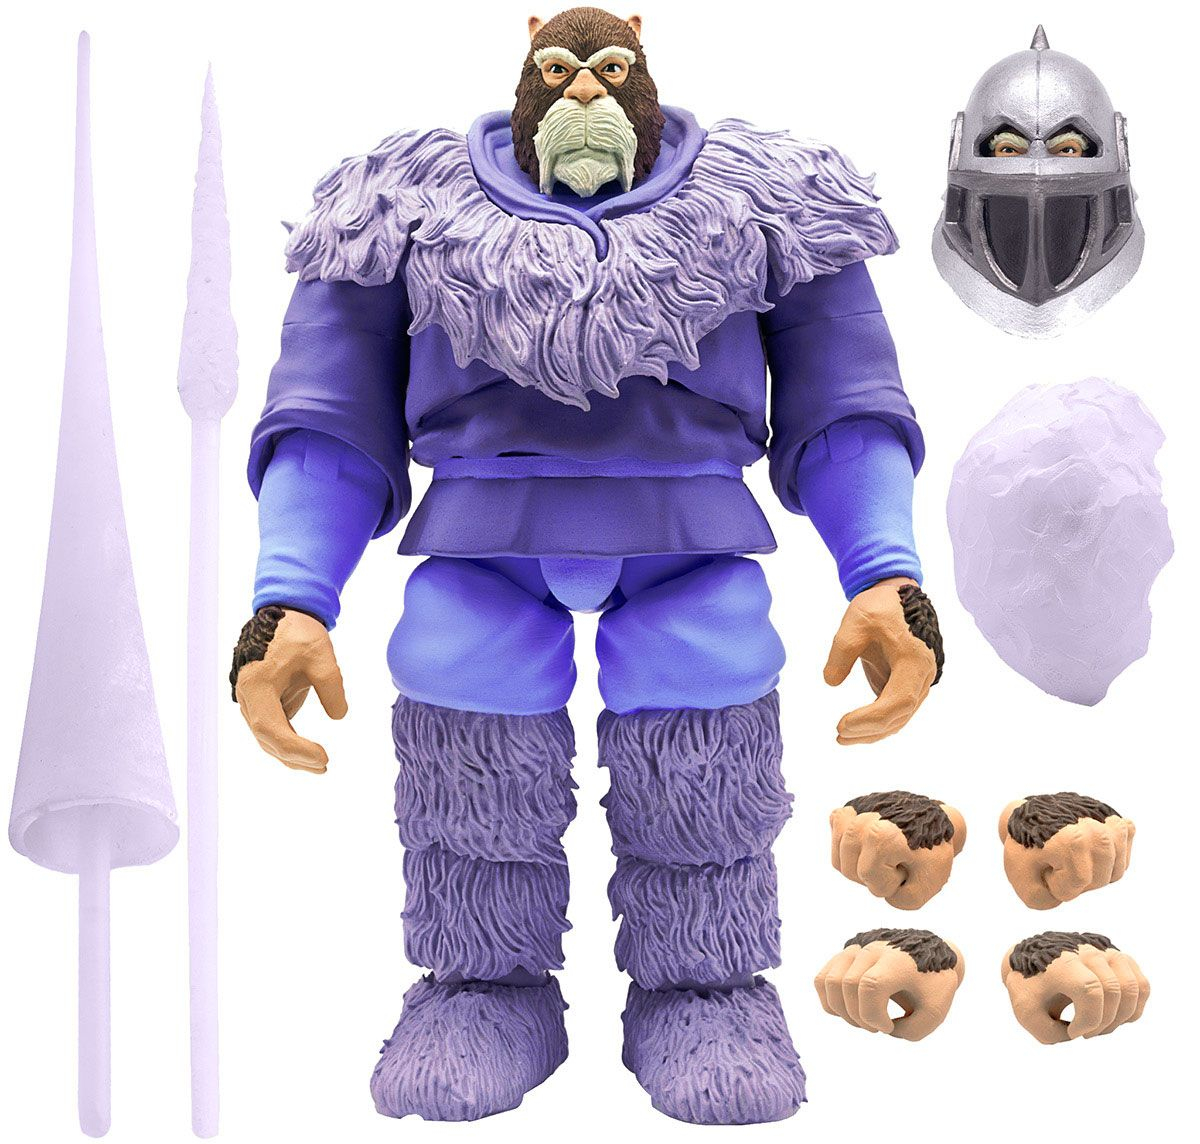 *PREORDER* Thundercats Ultimates: SNOWMAN OF HOOK MOUNTAIN by Super7